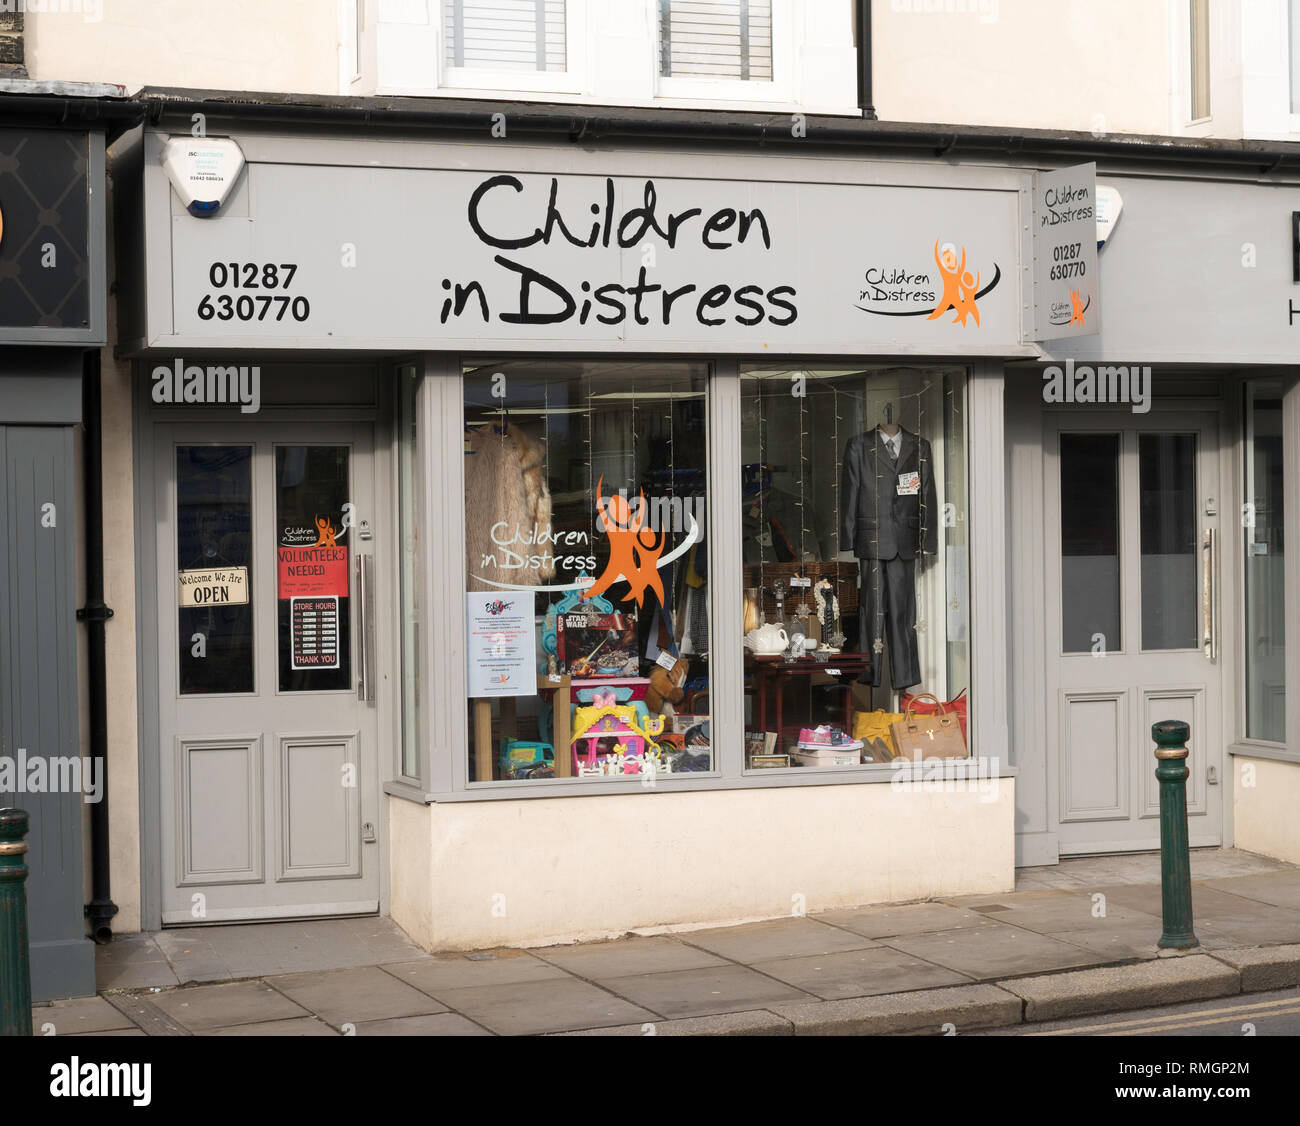 Children in Distress charity shop front in Guisborough, North Yorkshire, England, UK - Stock Image